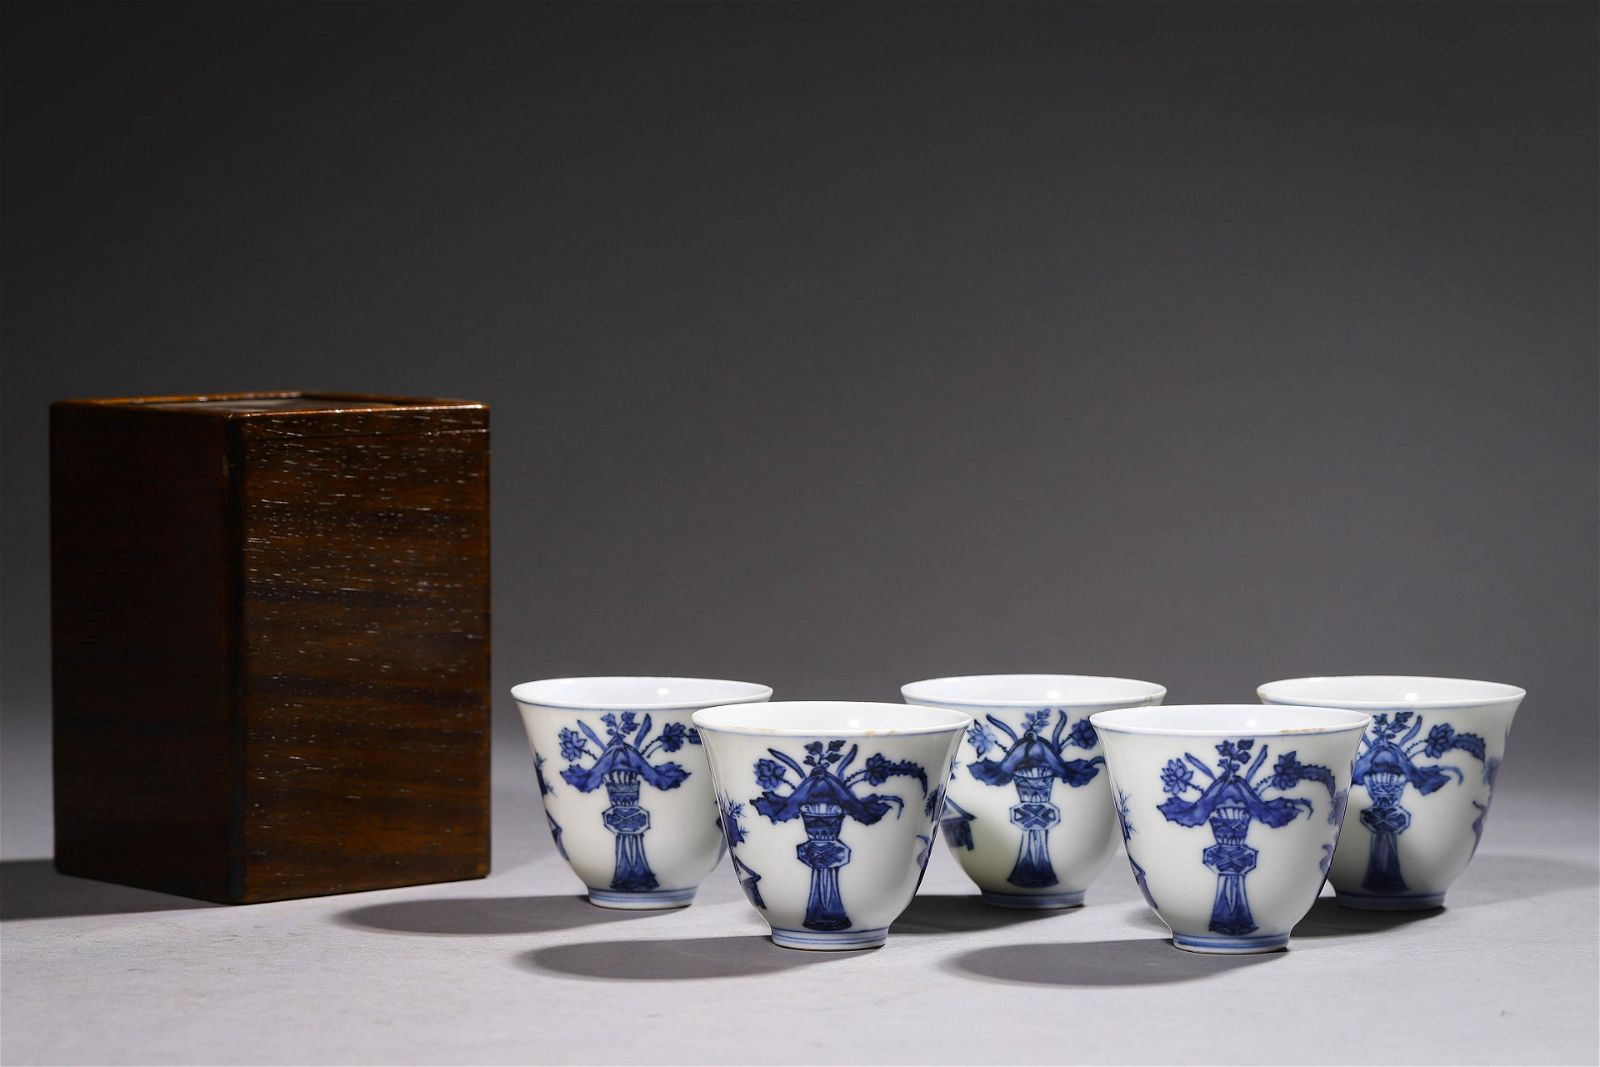 A Group of Five Blue & White Porcelain Cups